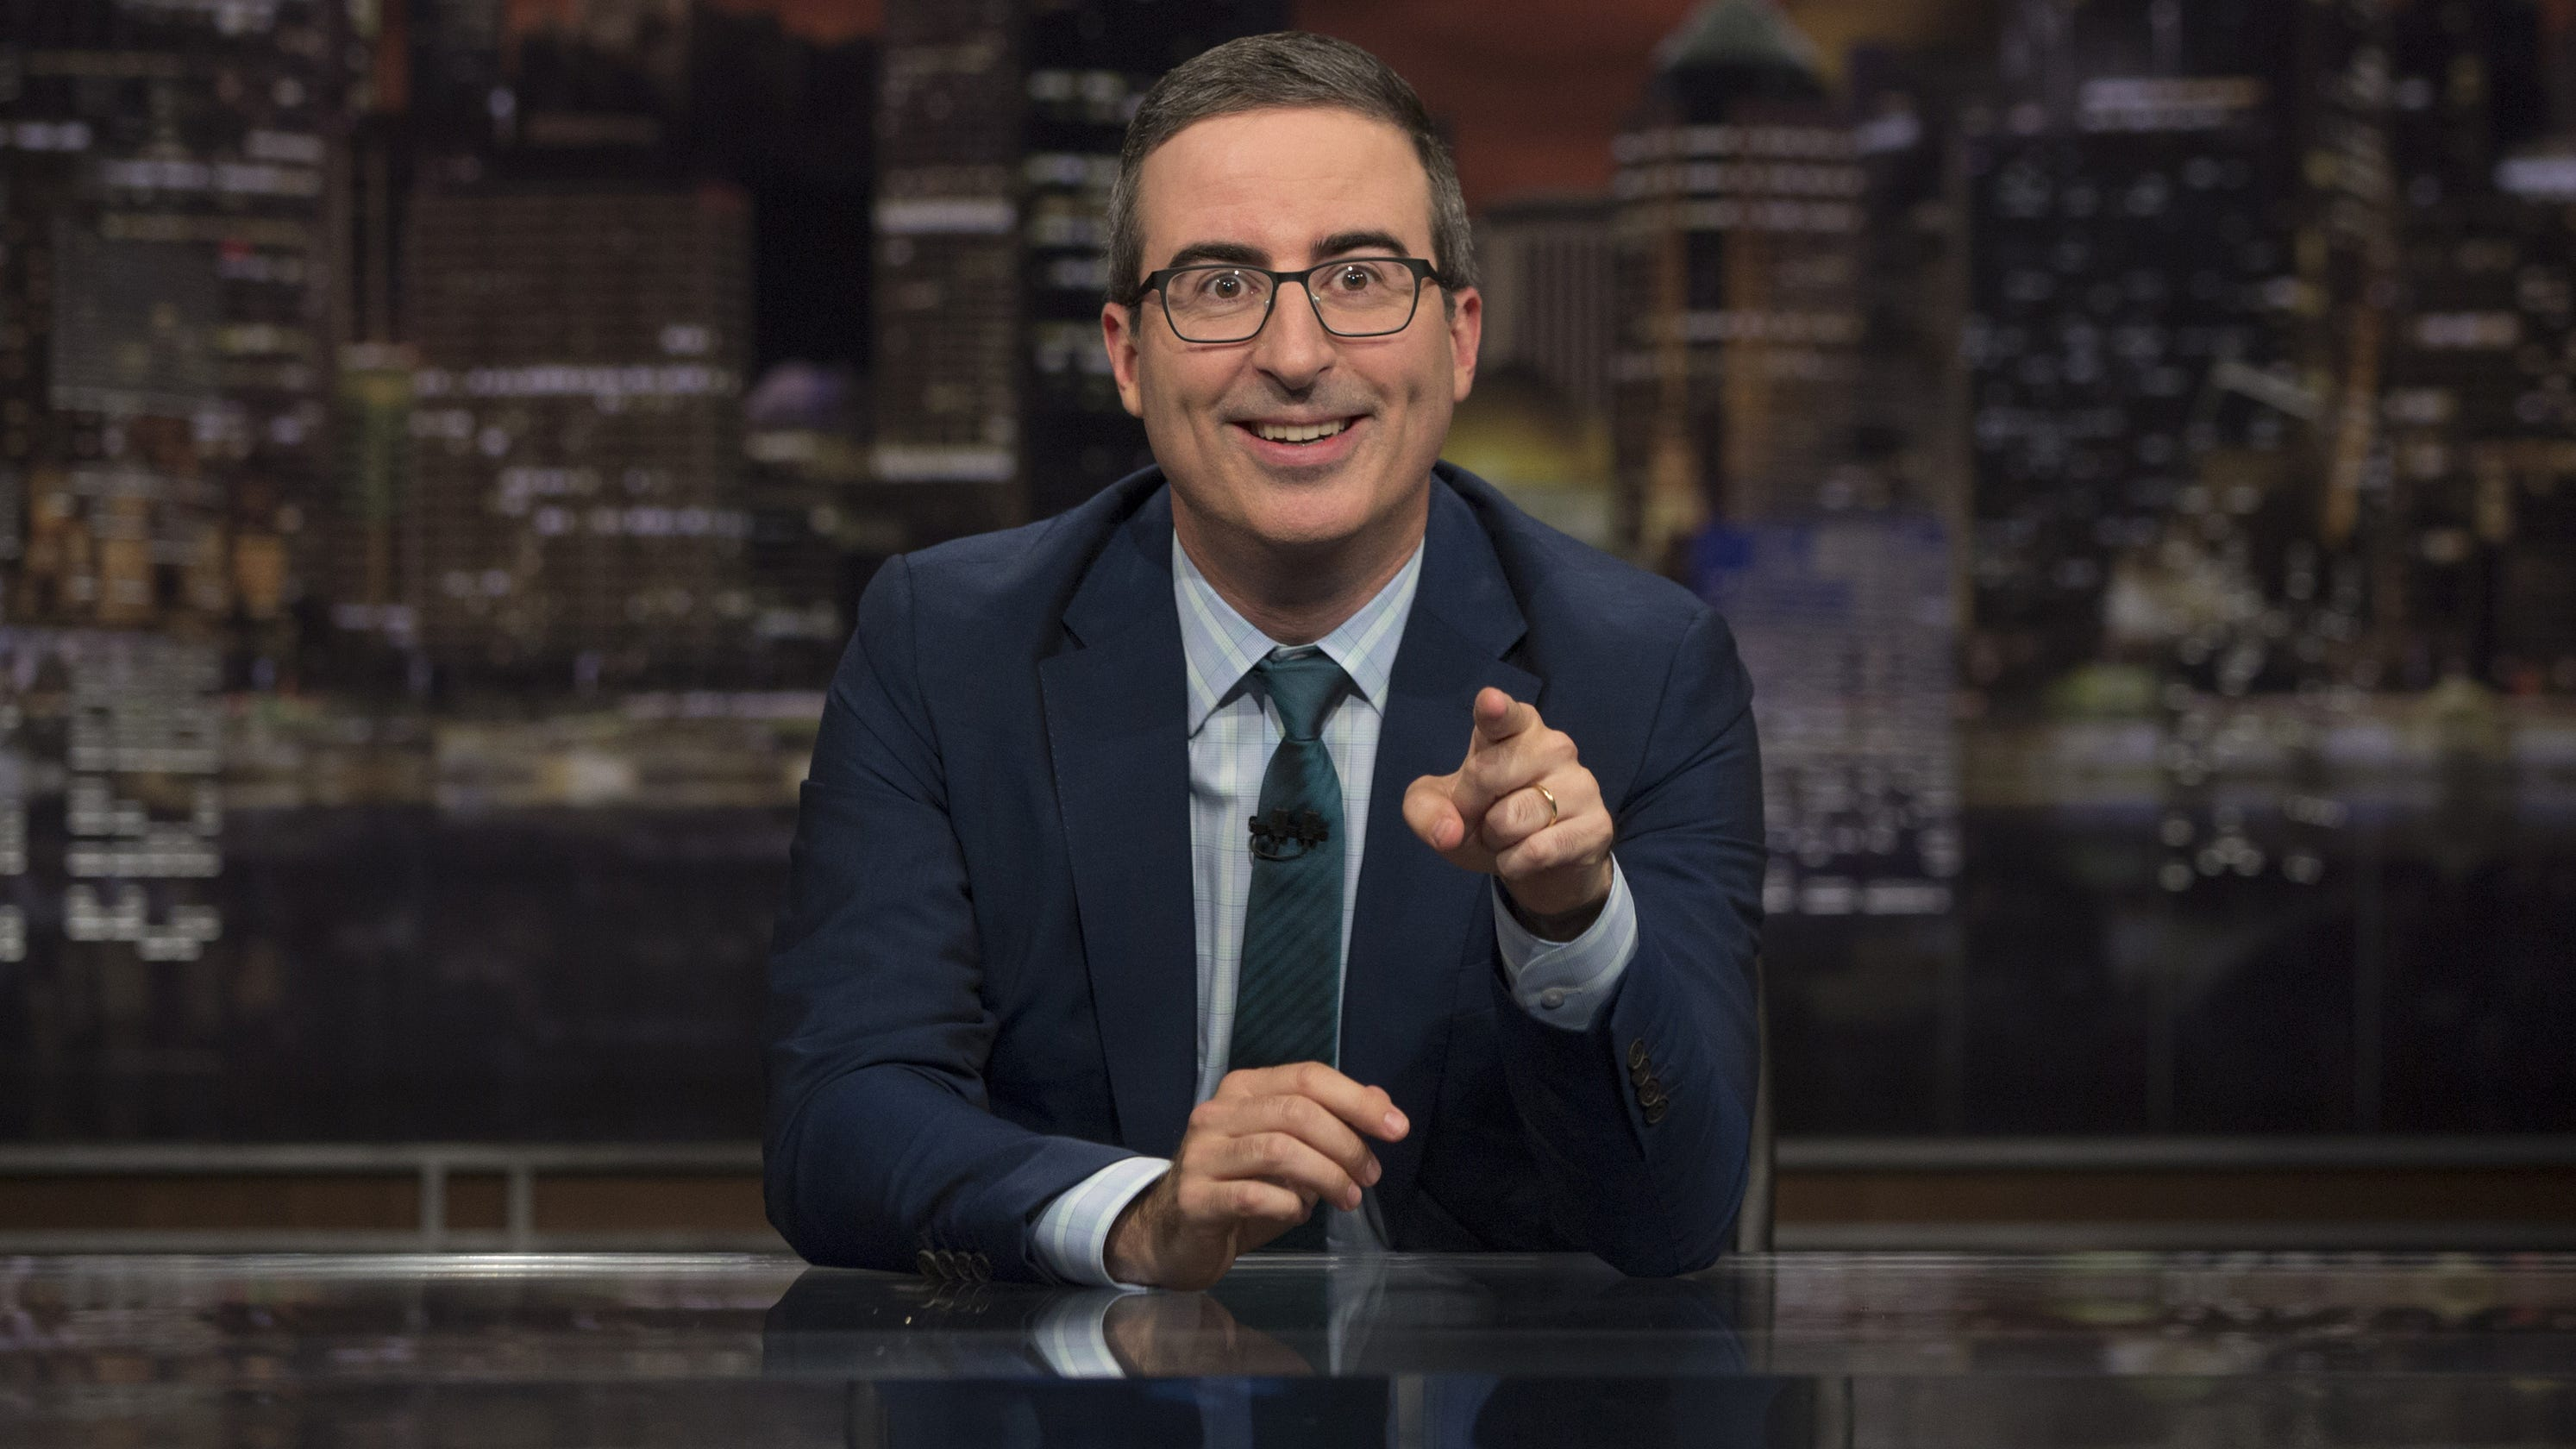 John Oliver weighs in on news he missed, from 'stupid' shutdown to Ocasio-Cortez dancing